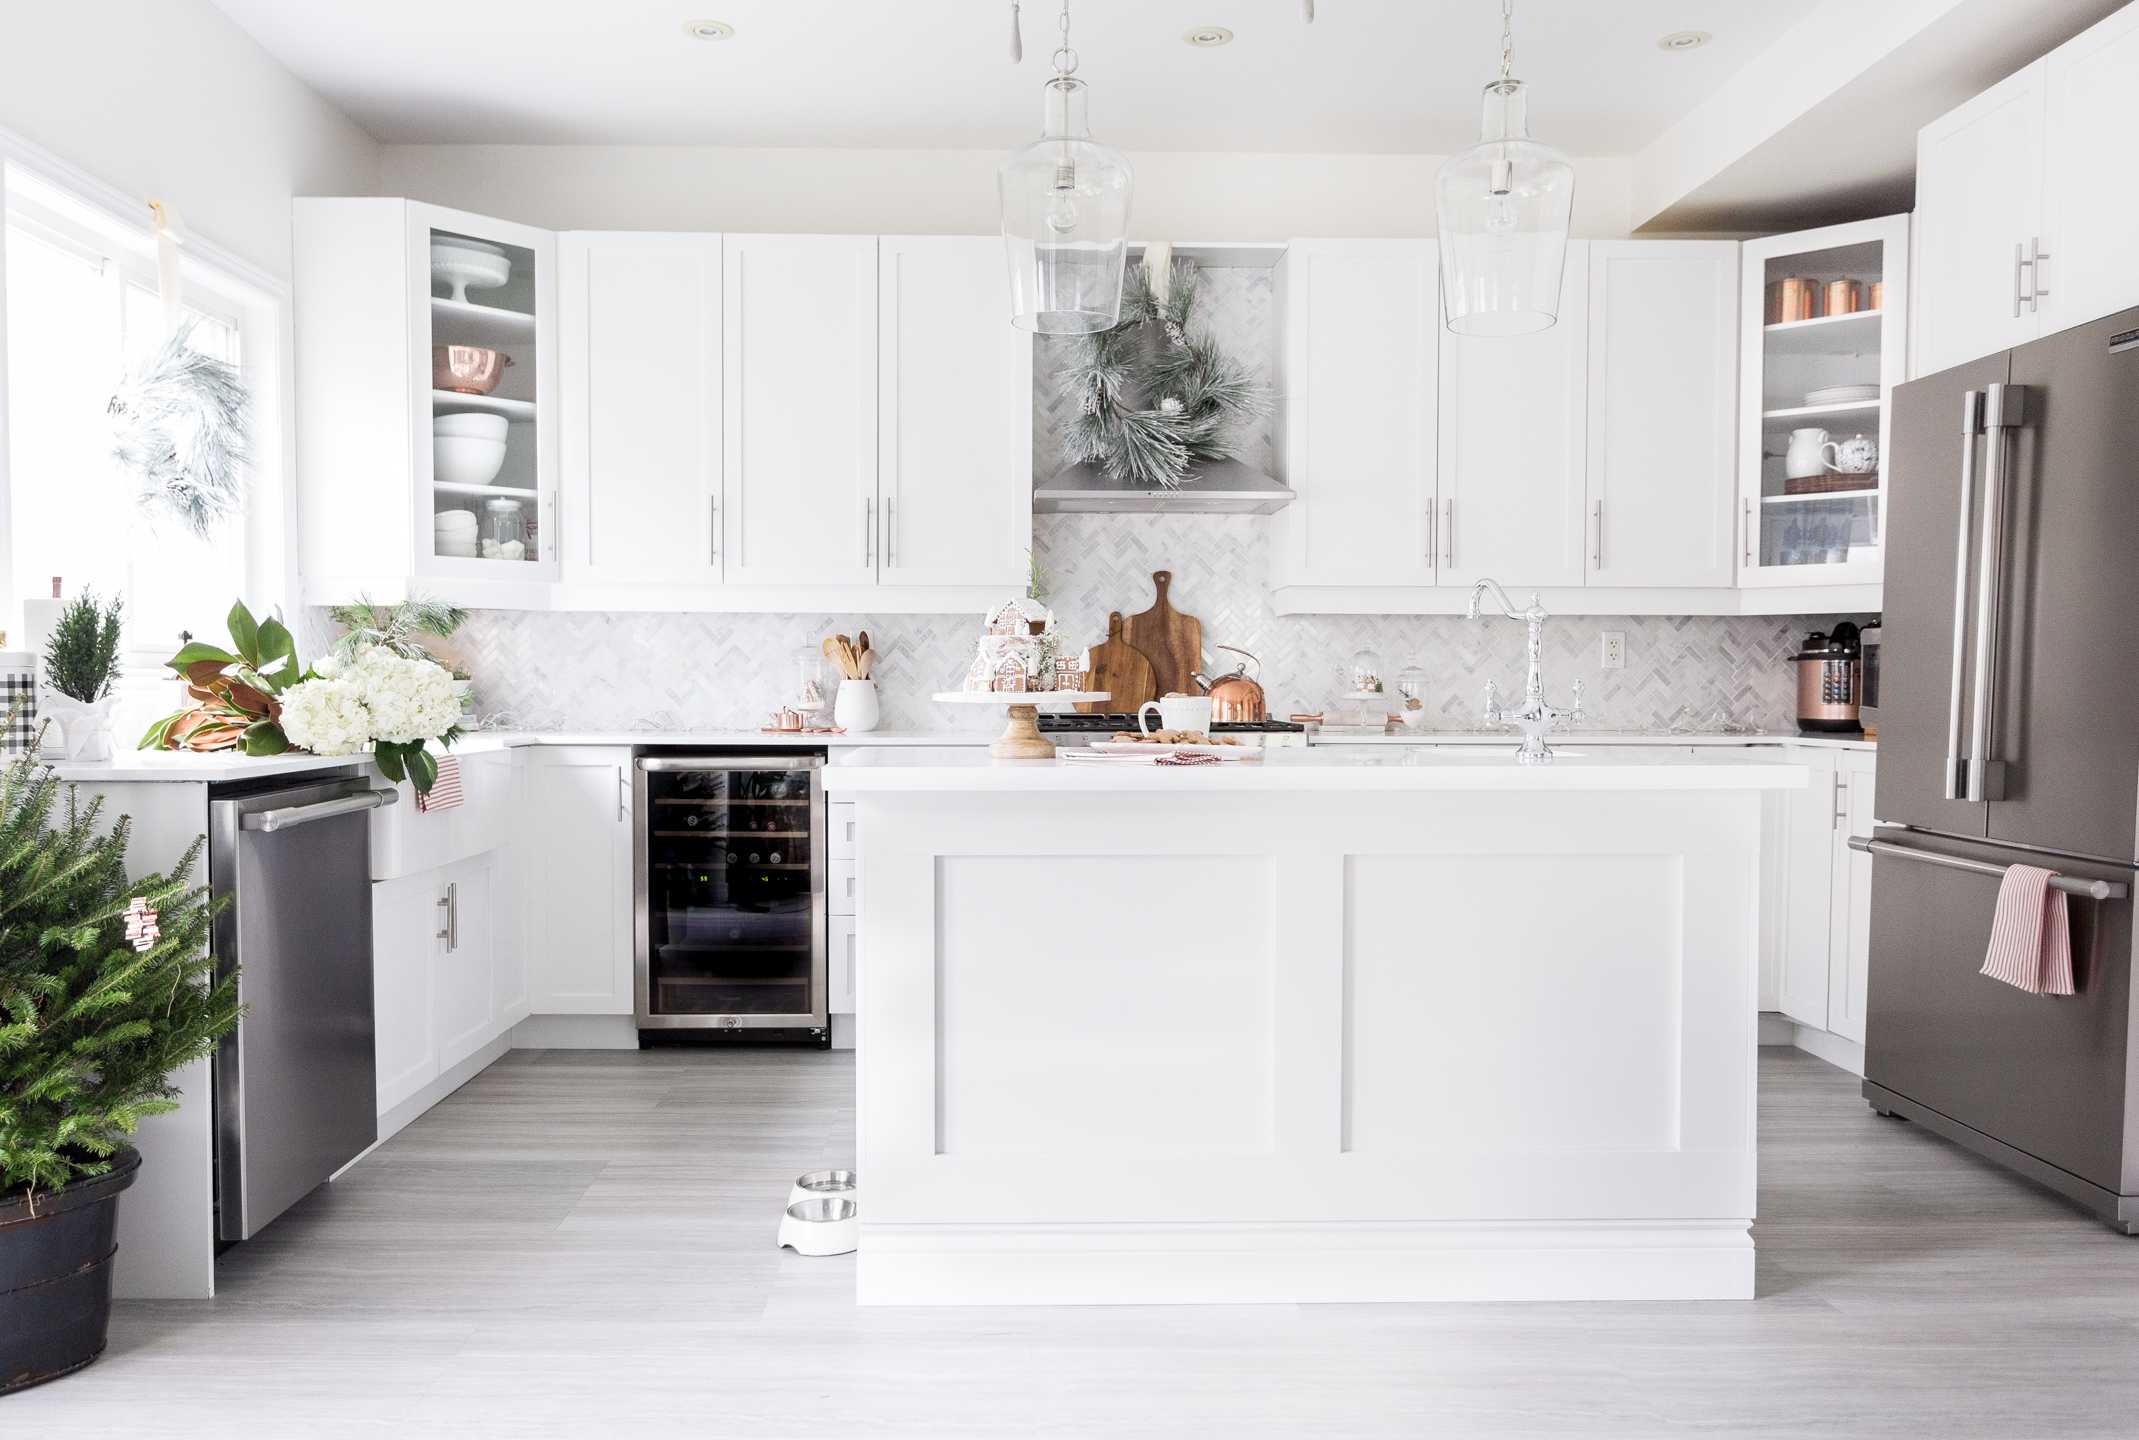 fusion-mineral-paint_kitchen-makeover-the-before-after-you-must-see_01.jpg